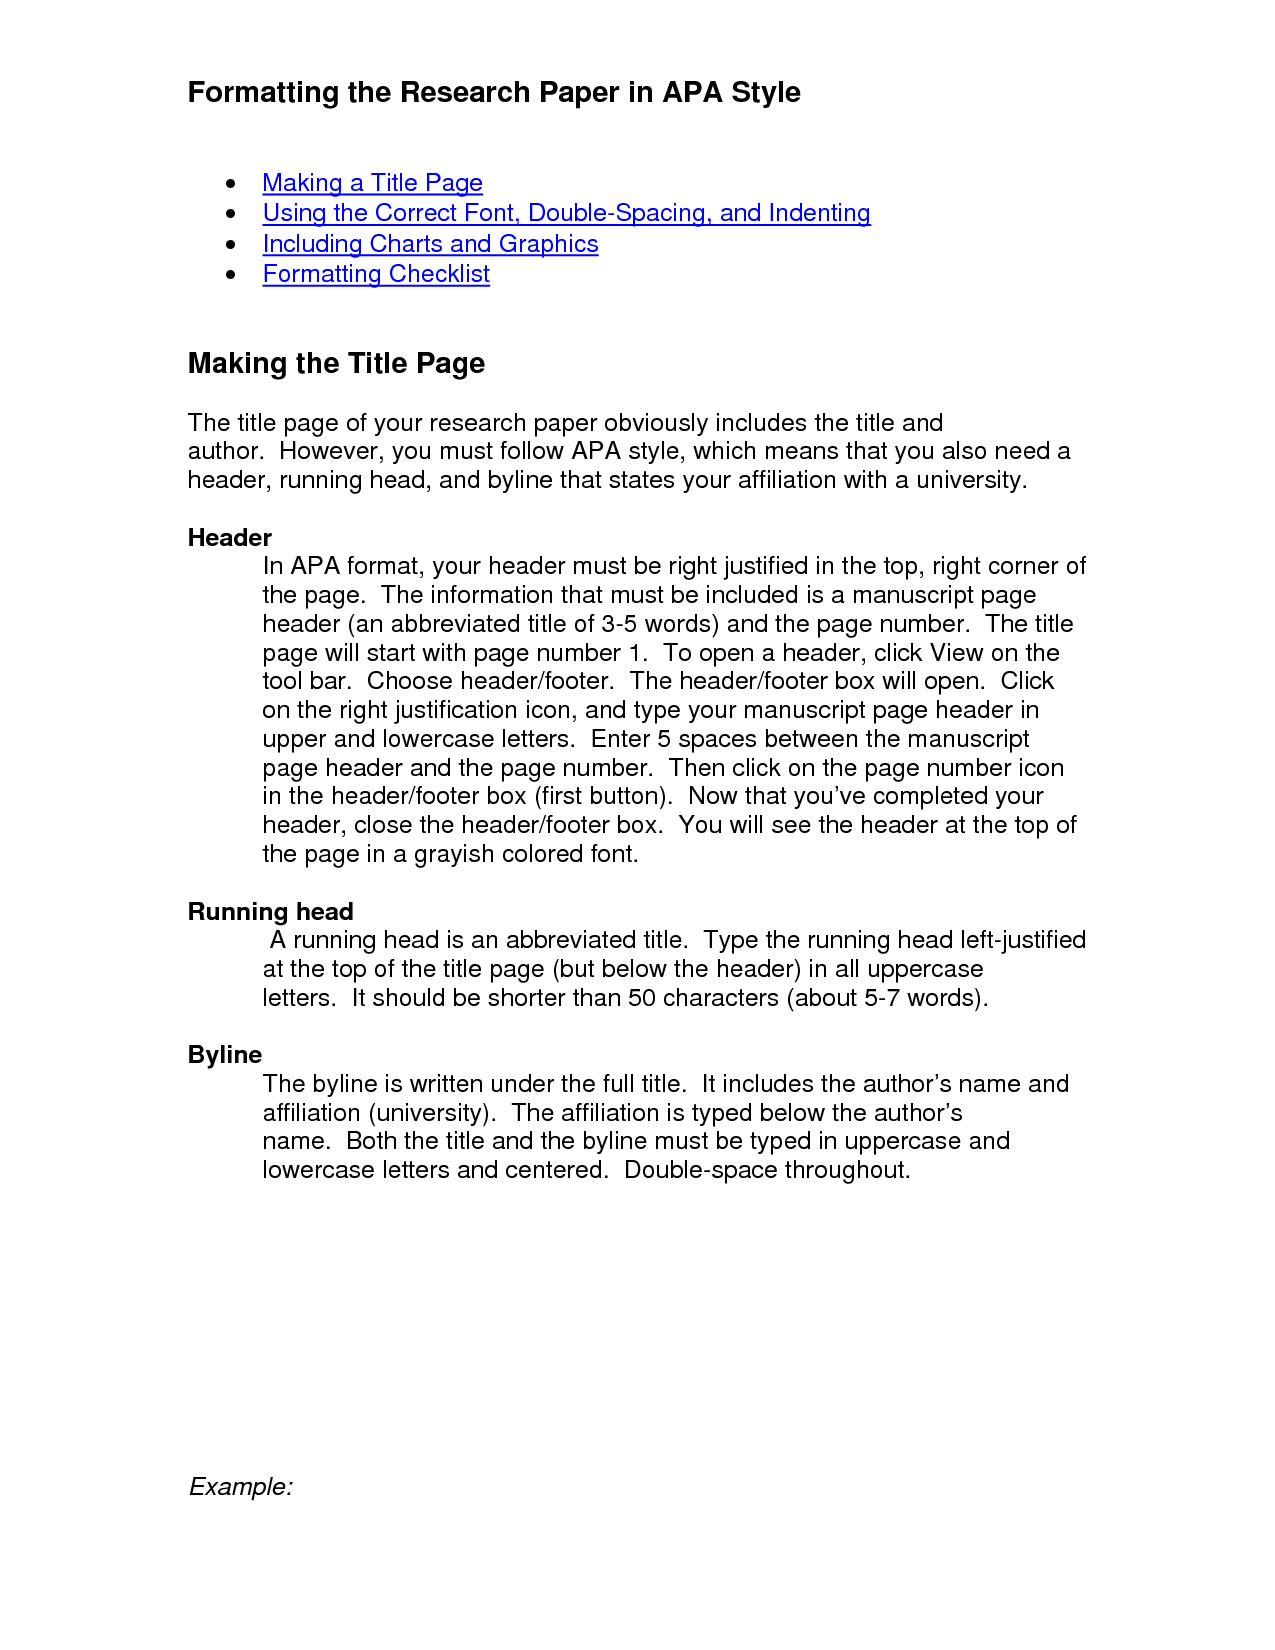 examples of apa format paper This sample paper is an example of a one-experiment paper that demonstrates apa style elements sample two-experiment paper (pdf) this abridged manuscript illustrates the organizational structure characteristic of multiple-experiment papers written in apa style.